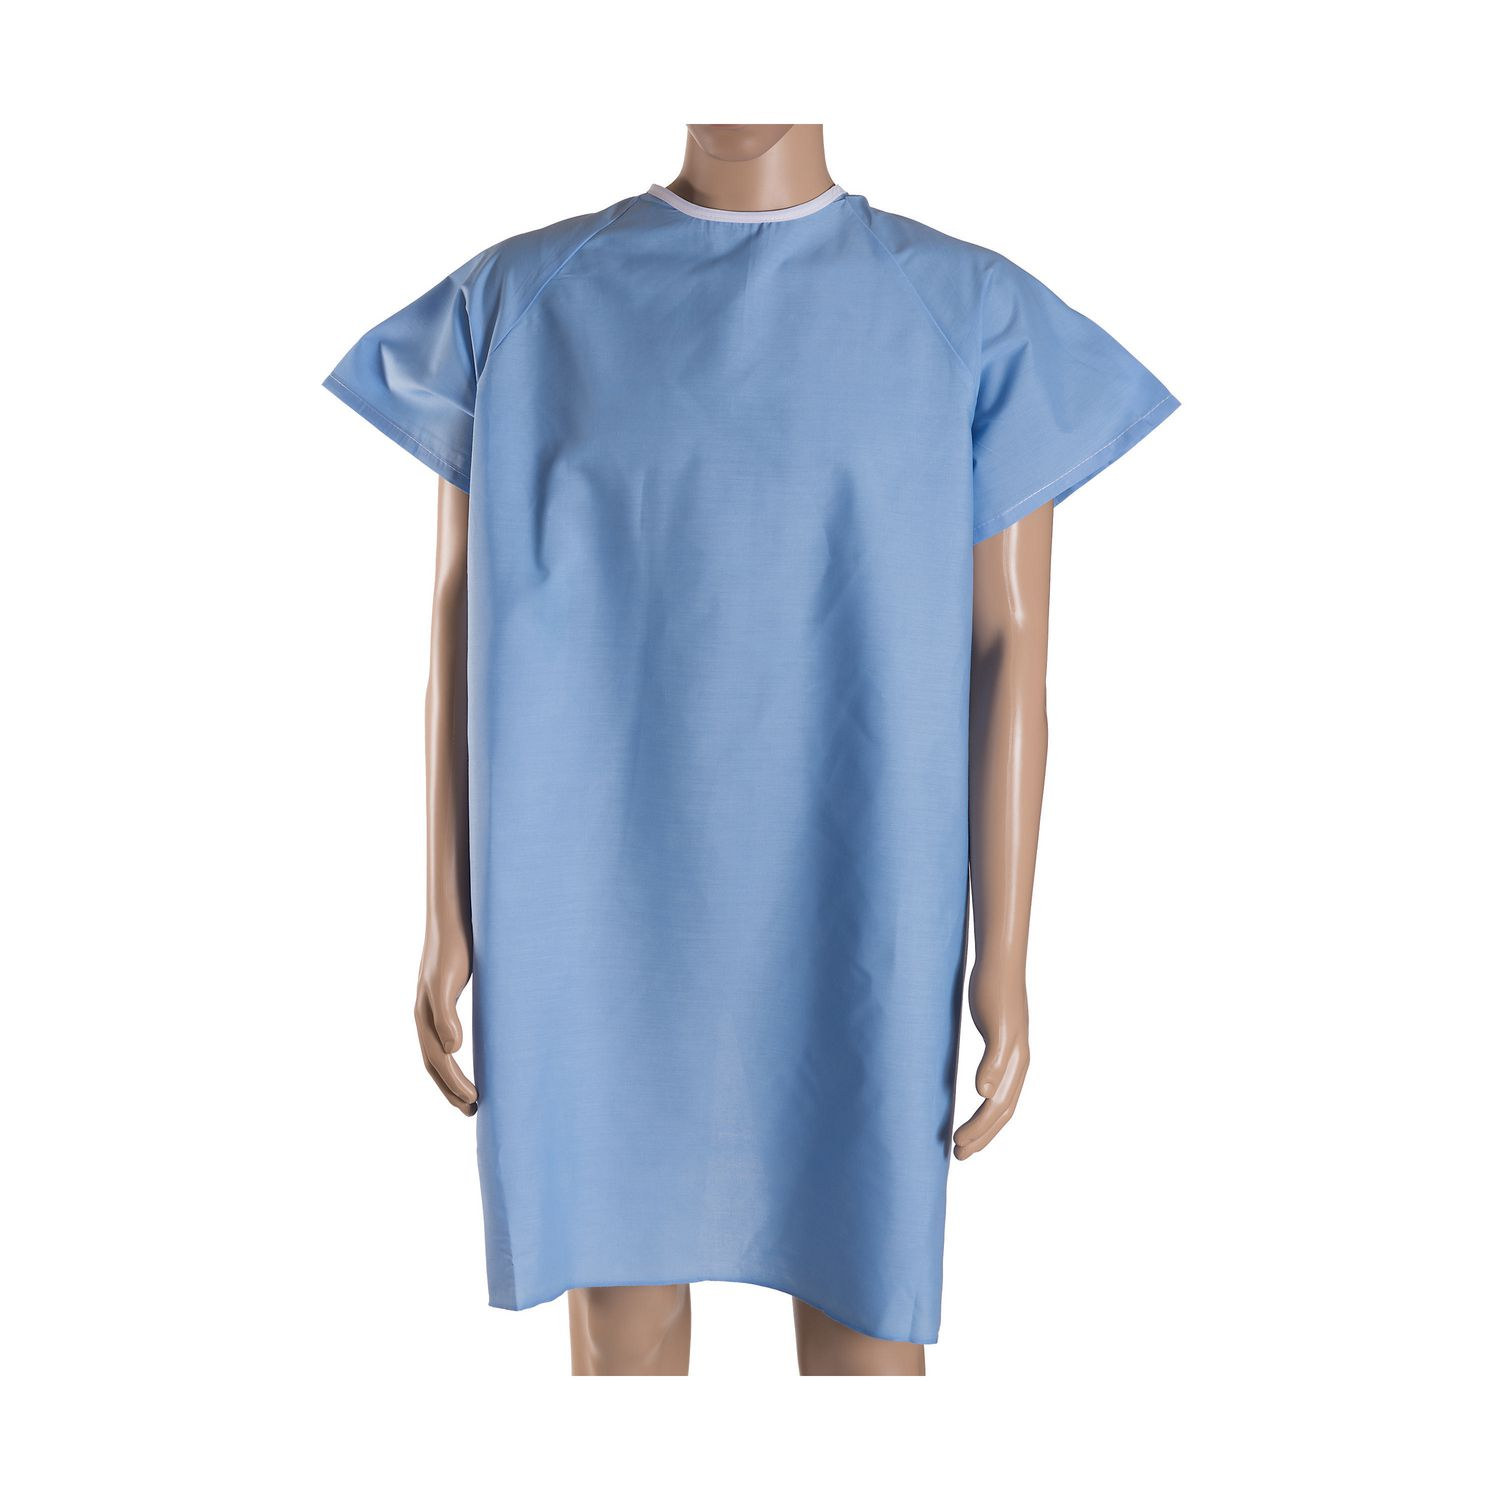 DMI Convalescent Gowns with Back Tape Ties | Walmart Canada